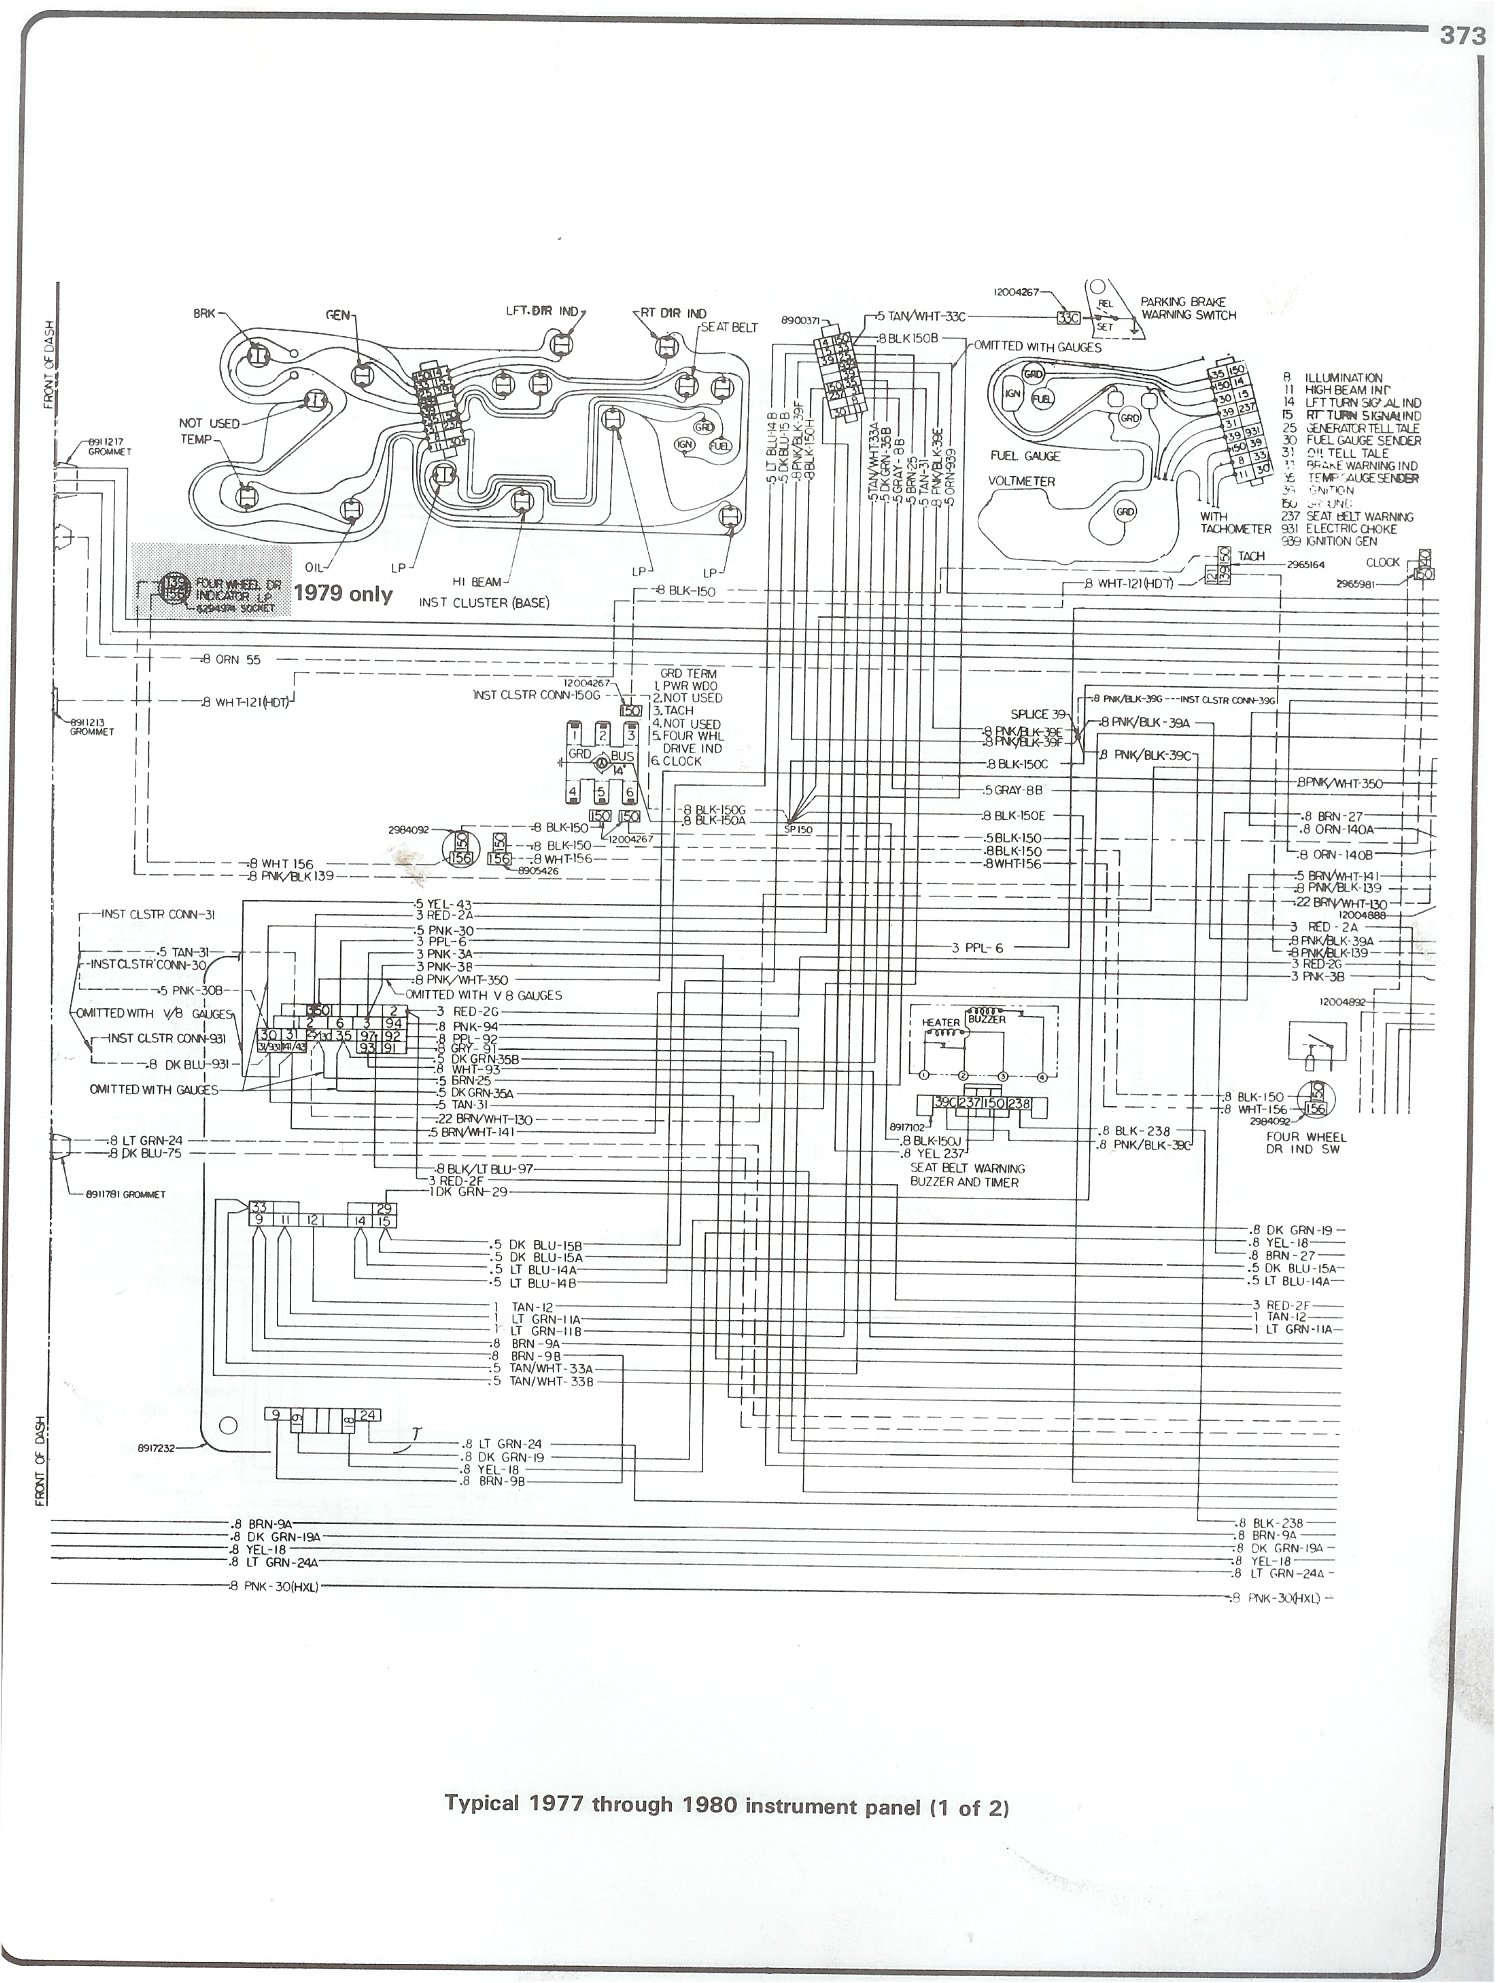 87 Chevy Pickup Wiring Diagram Another Blog About 73 Camaro Dash Get Free Image Truck Instrument Panel